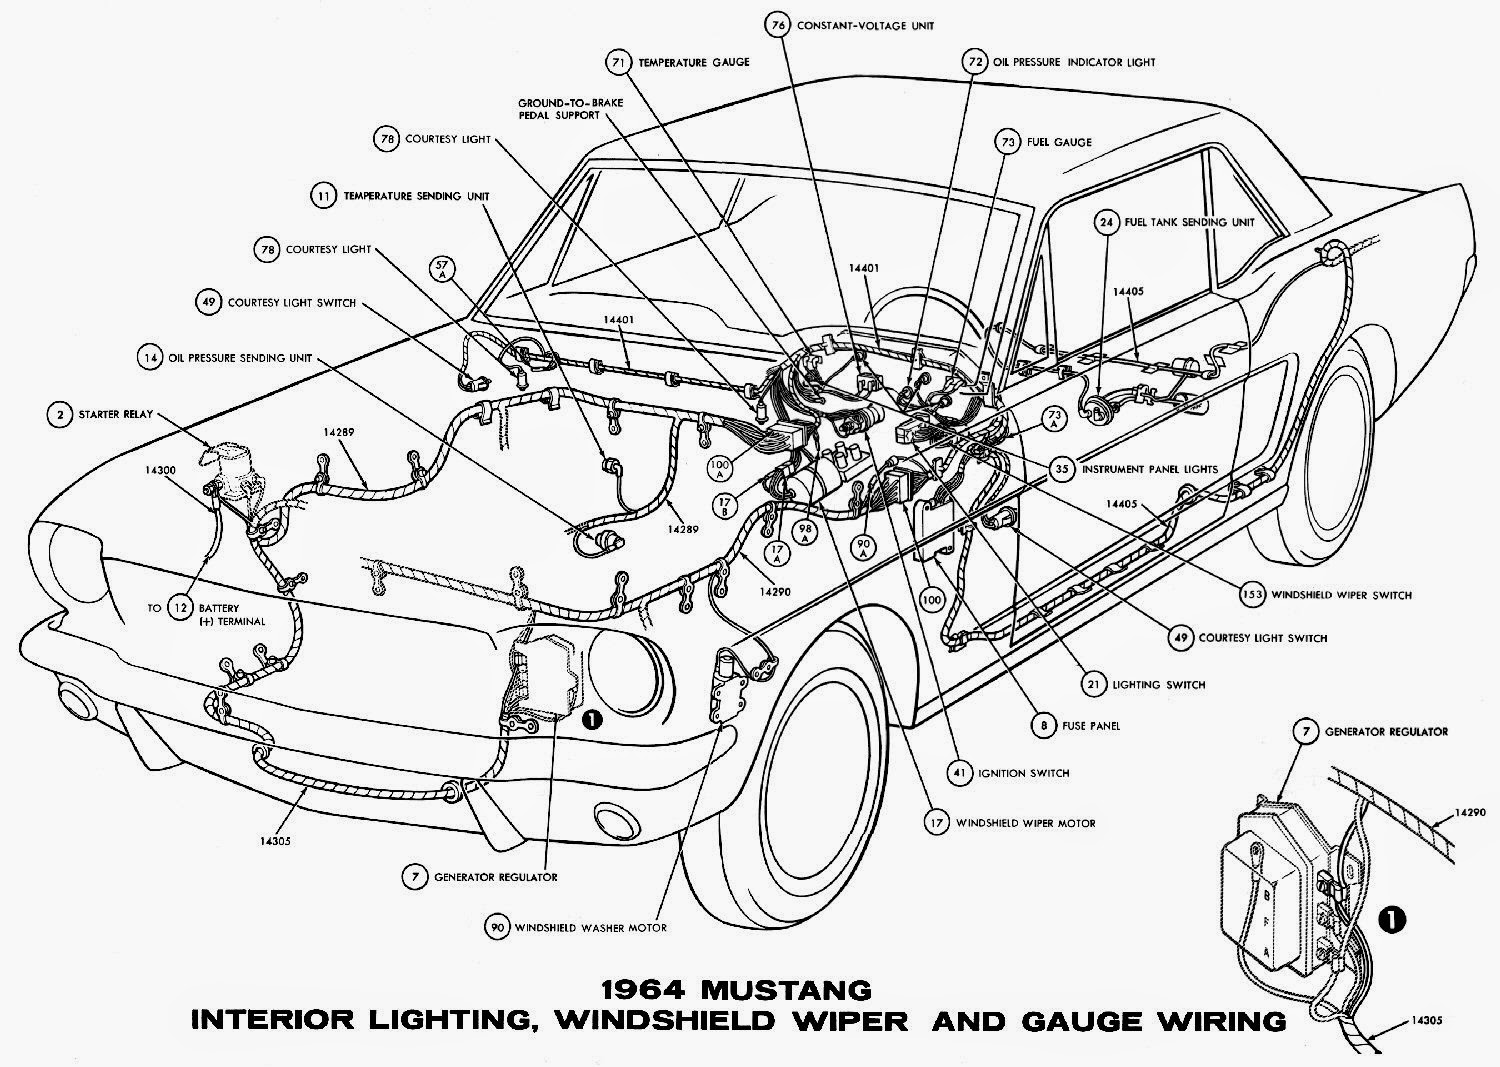 ford galaxie dash wiring diagram discover your wiring harley davidson dash electrical schematic